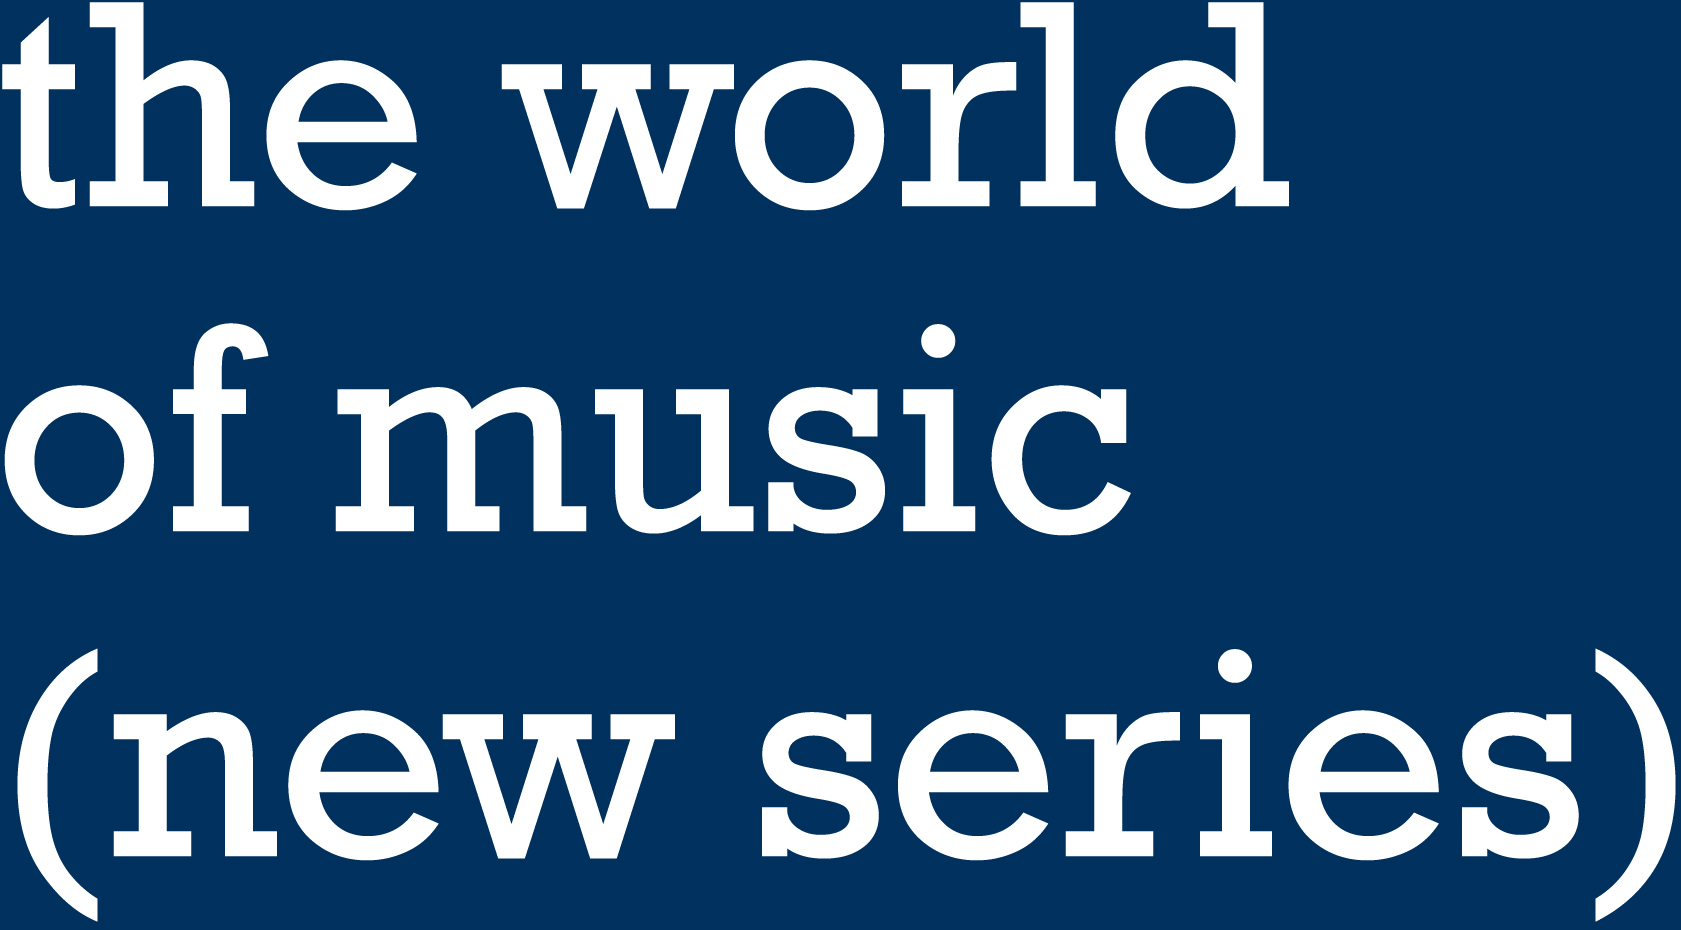 the world of music (new series)